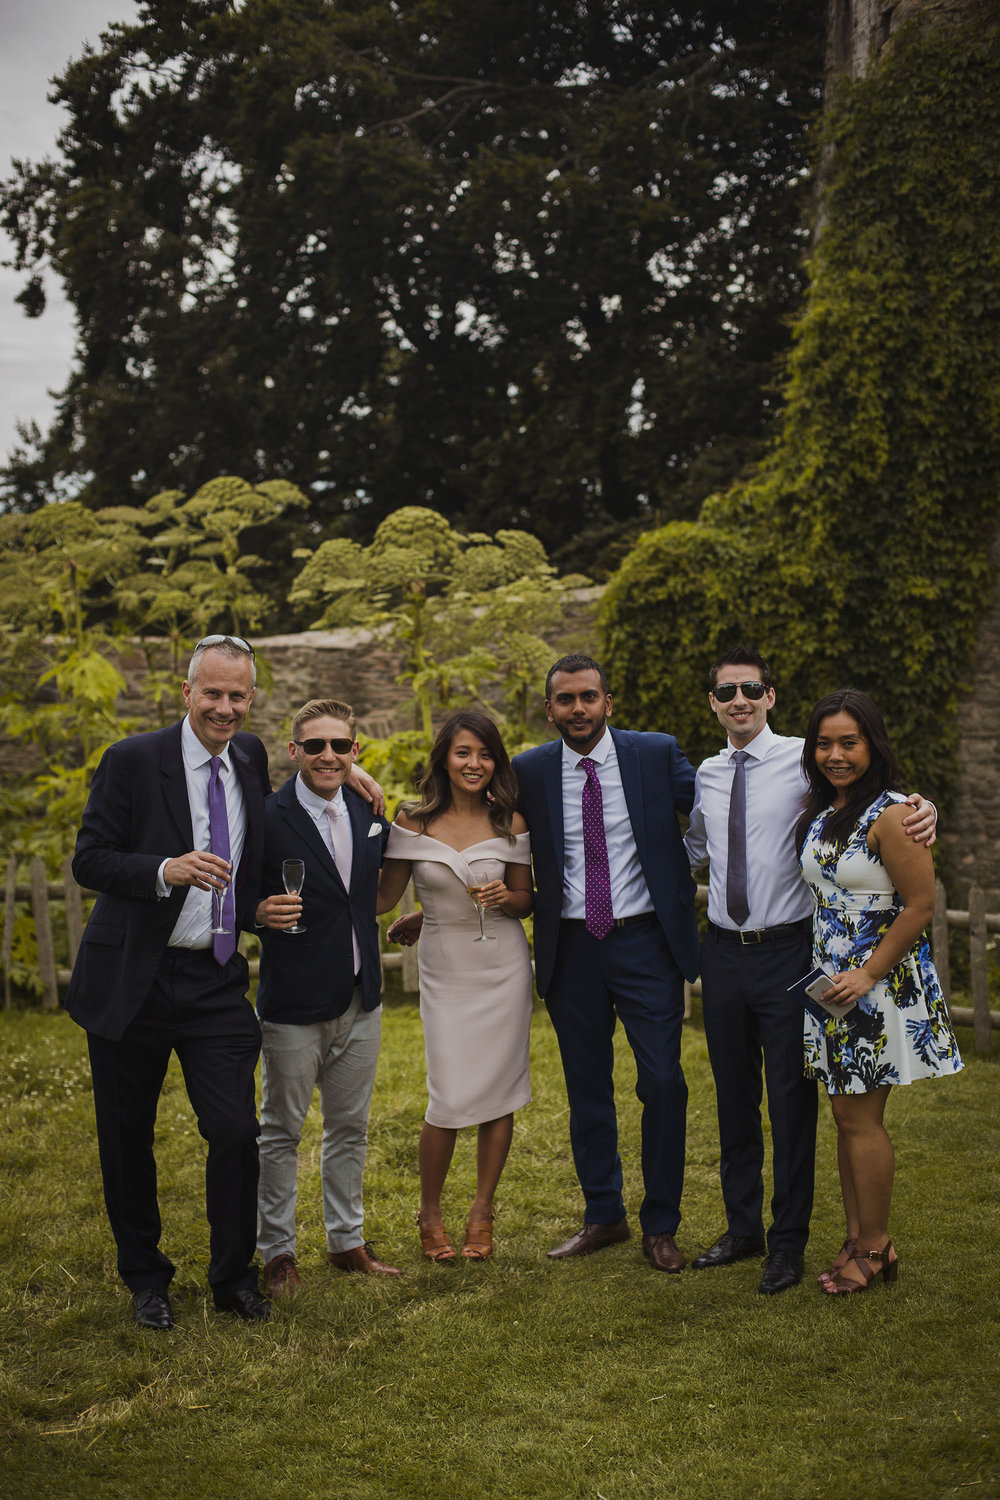 friends group photograph at wedding at usk castle